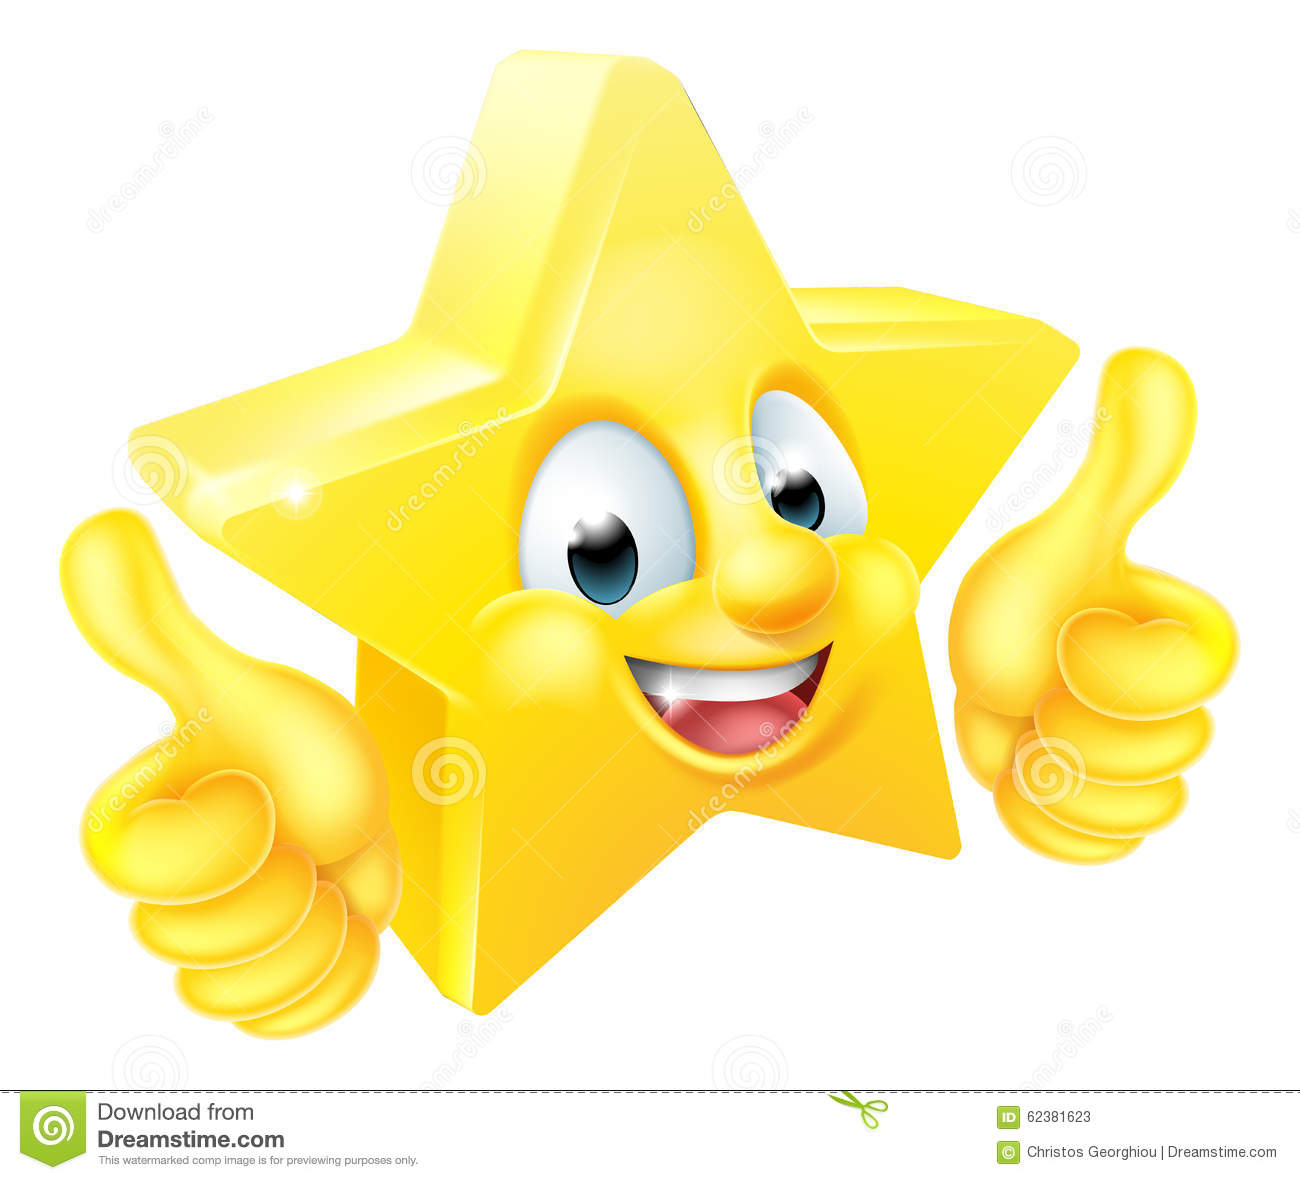 Emoji Thumbs Up Icon Stock Vector - Image: 91094909